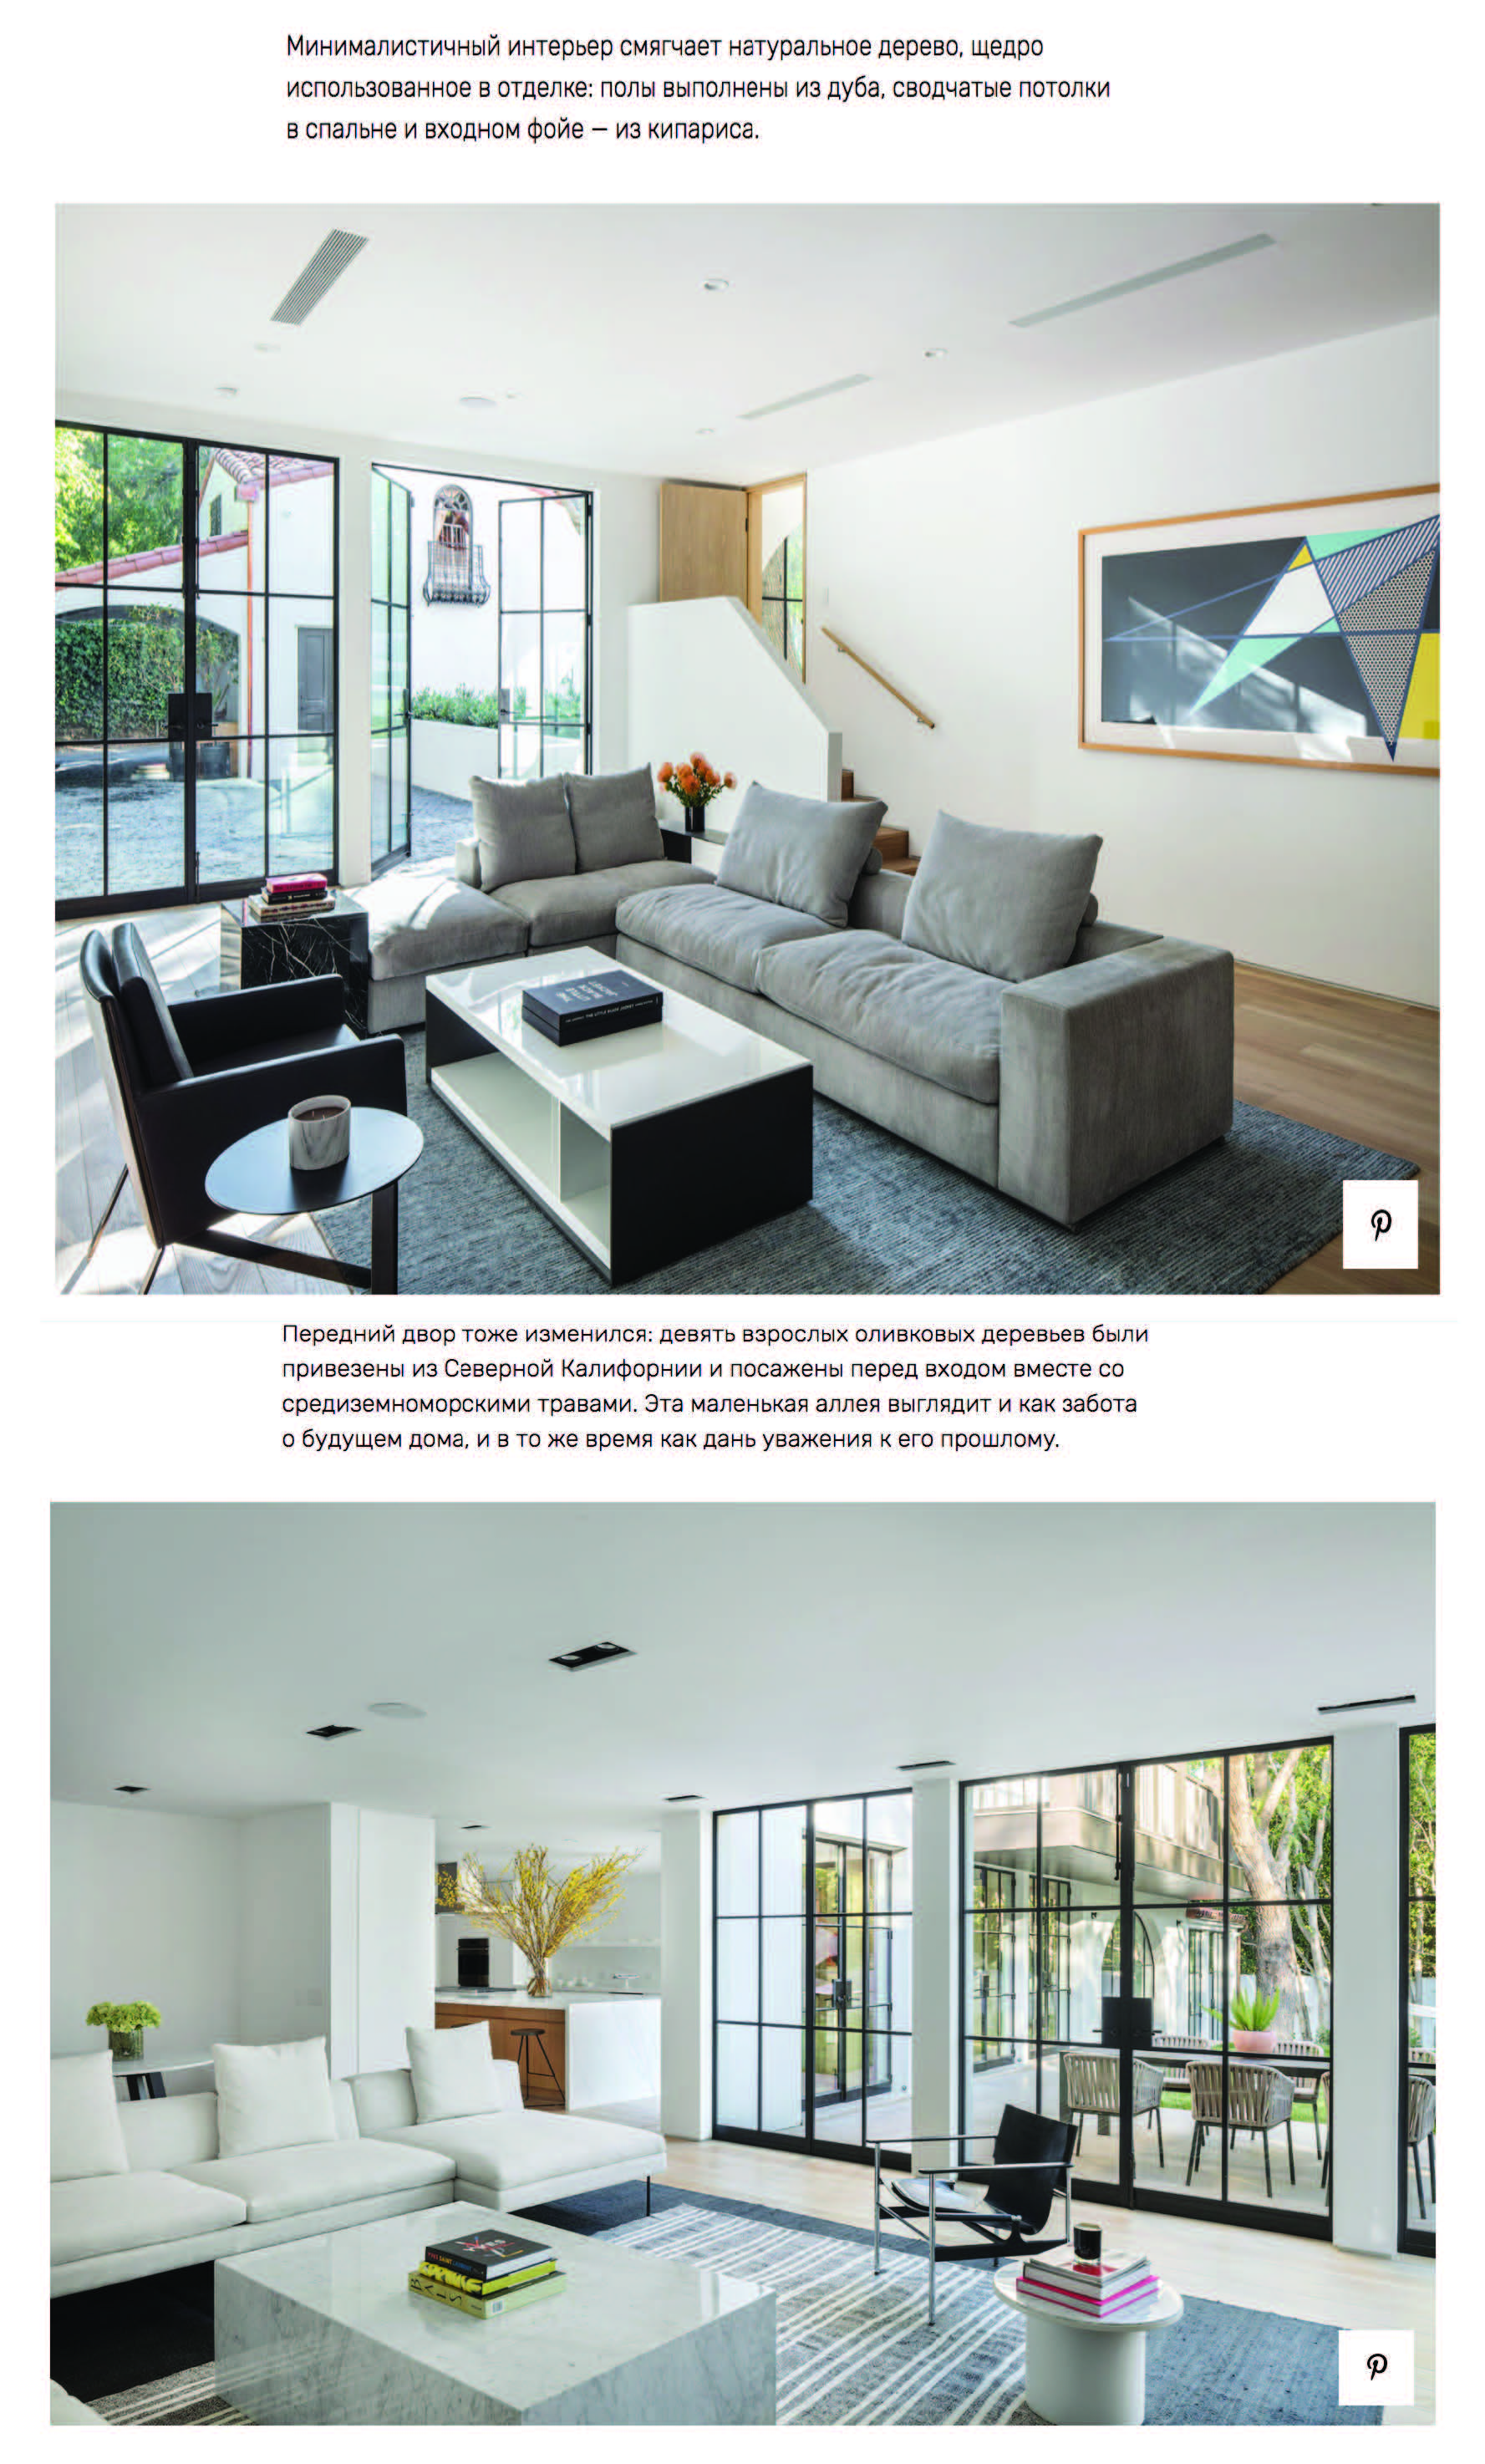 AD RUSSIA - AUGUST 2019 - STANDARD